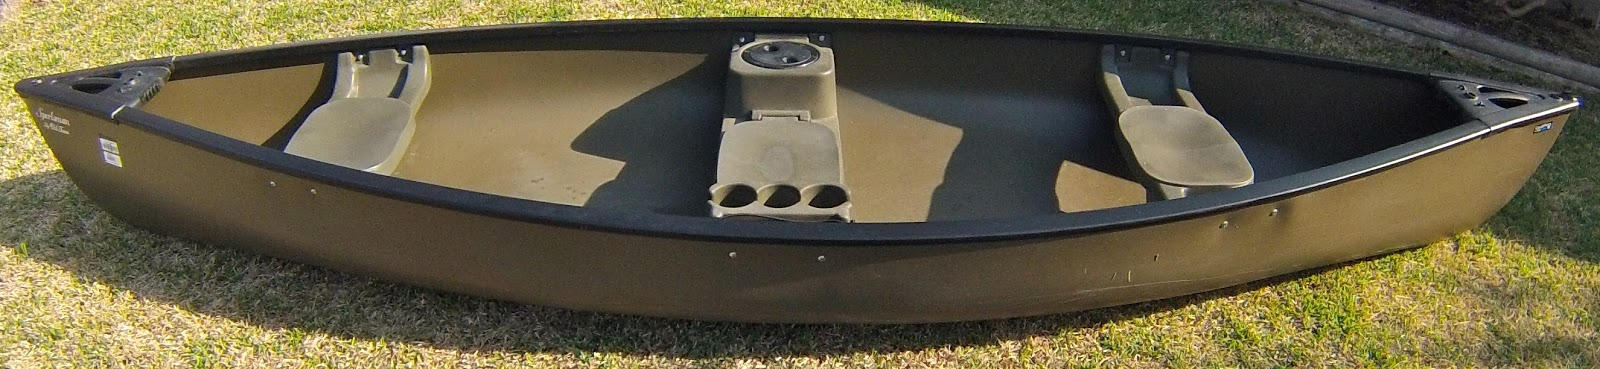 OLD TOWN SPORTSMAN canoe for sale | Ohio Game Fishing - Your Ohio